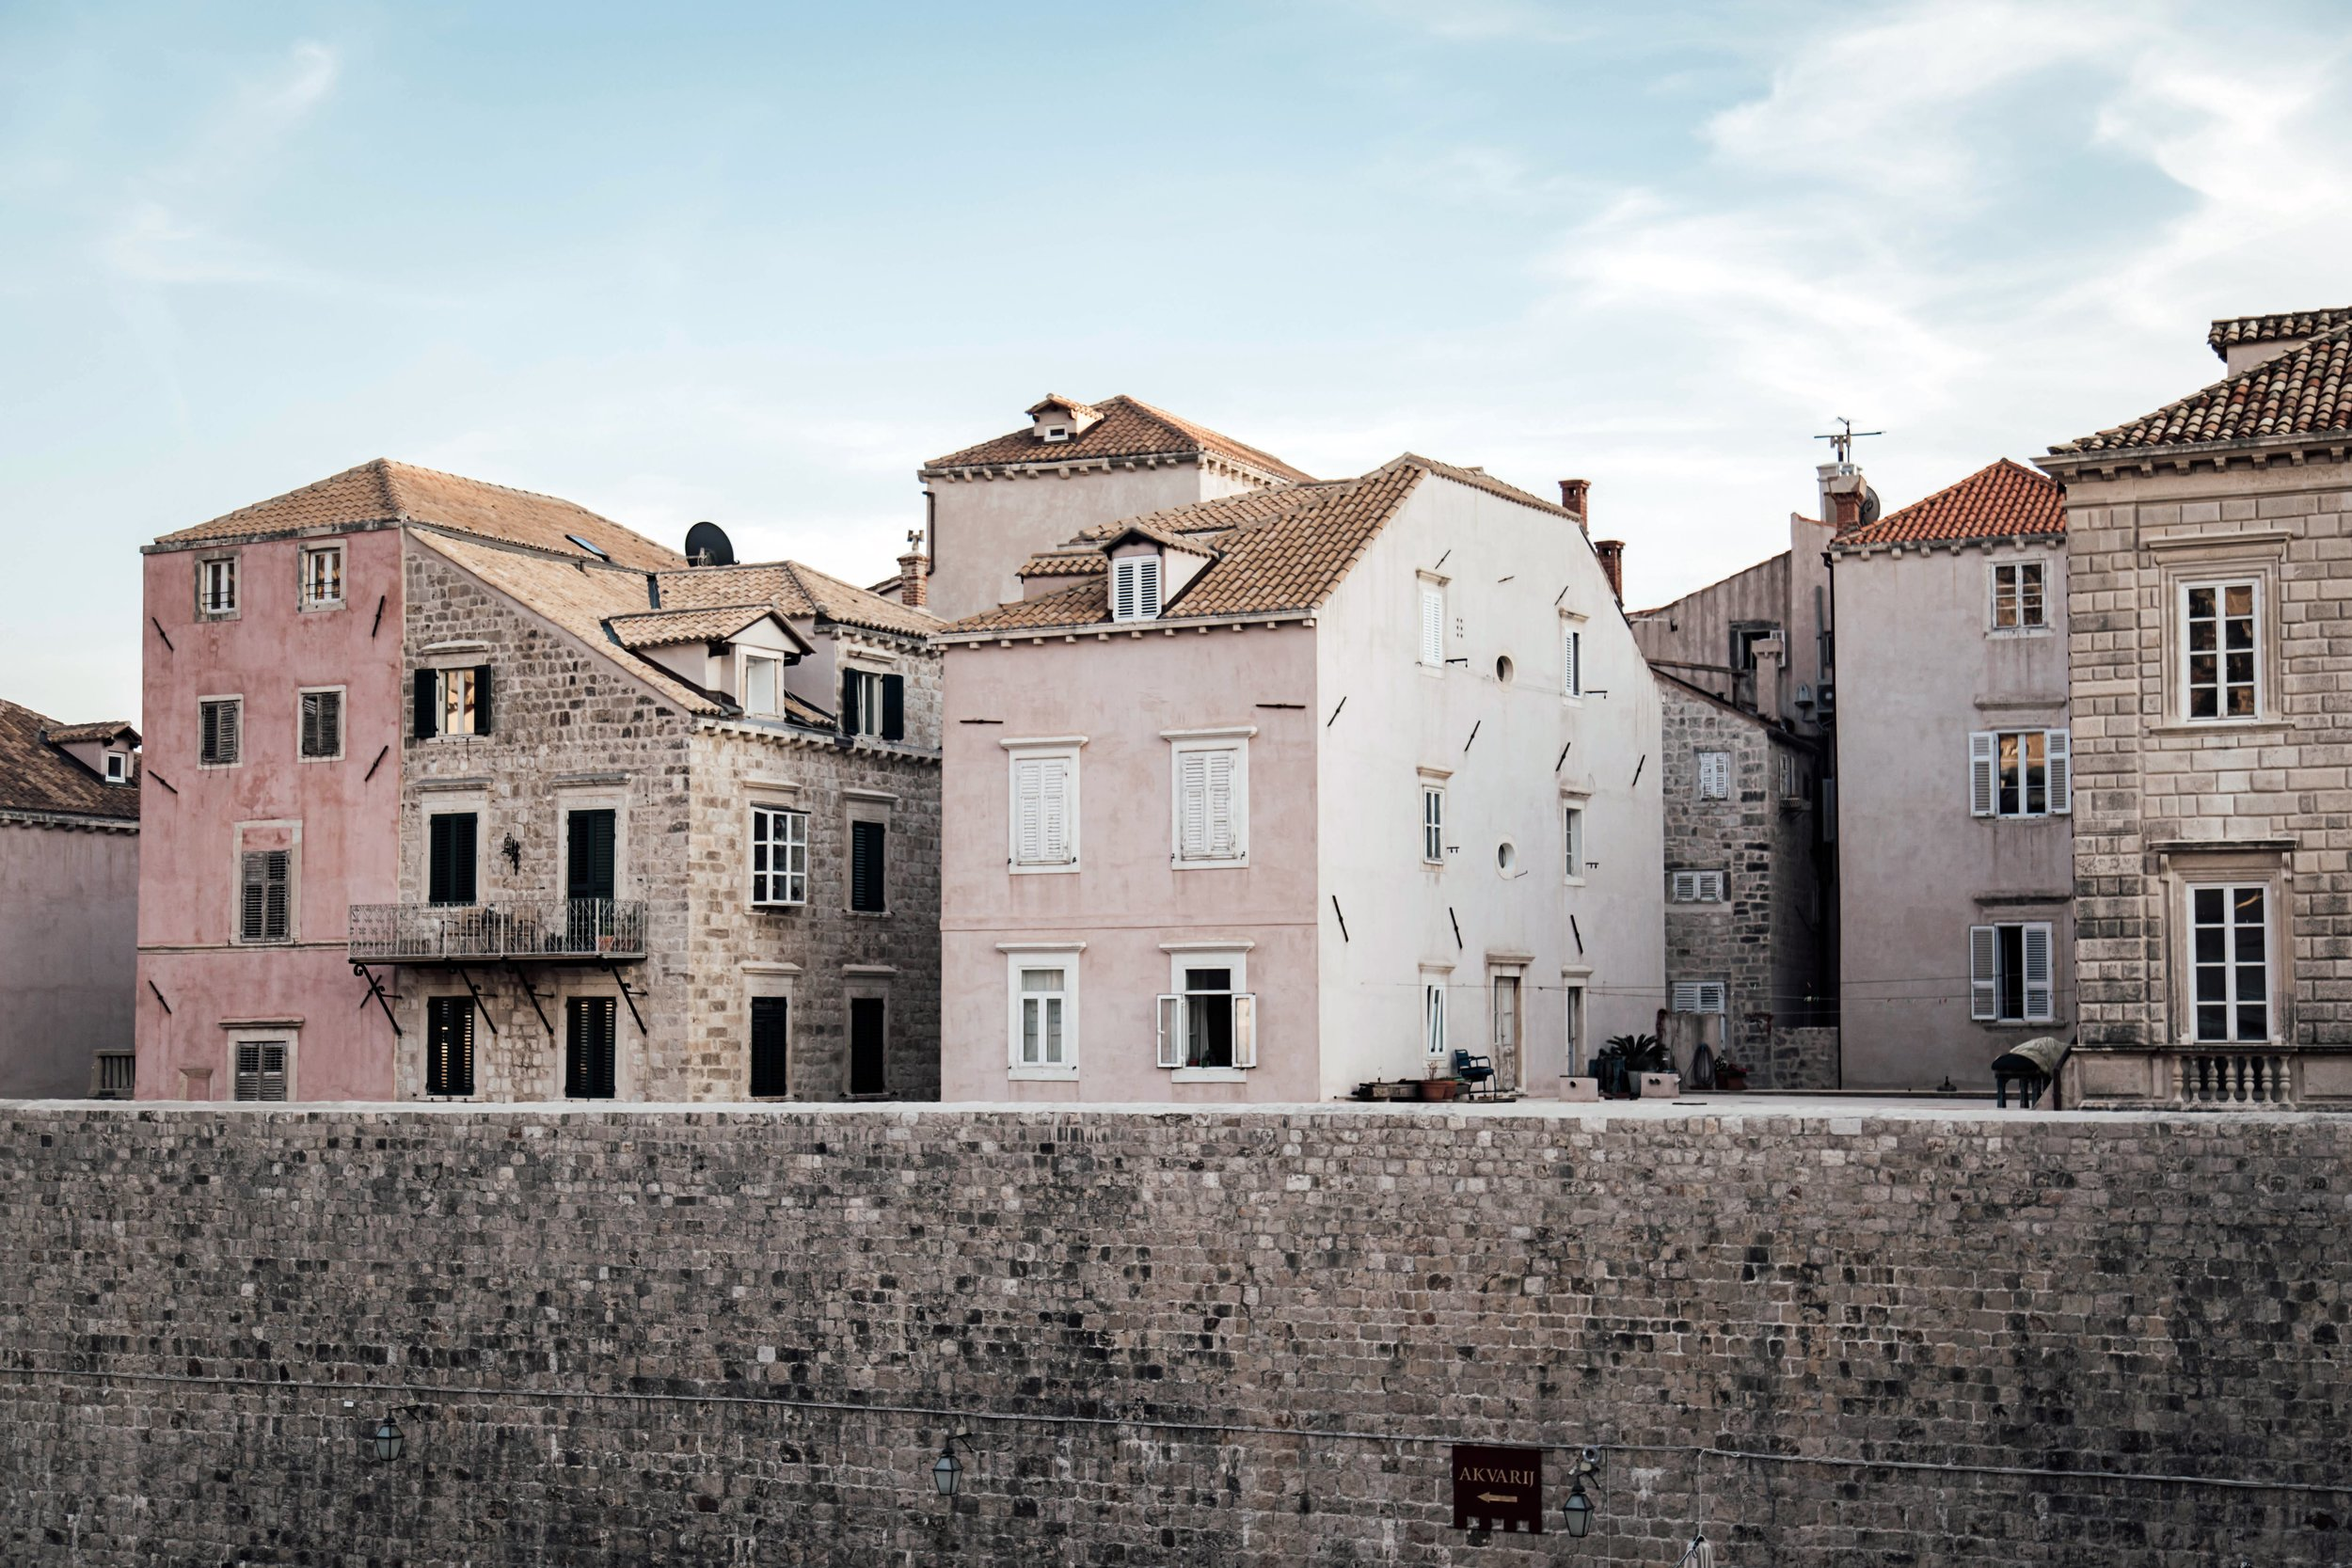 Travel_Photography_1_Dubrovnik-Croatia (95)-min.jpg